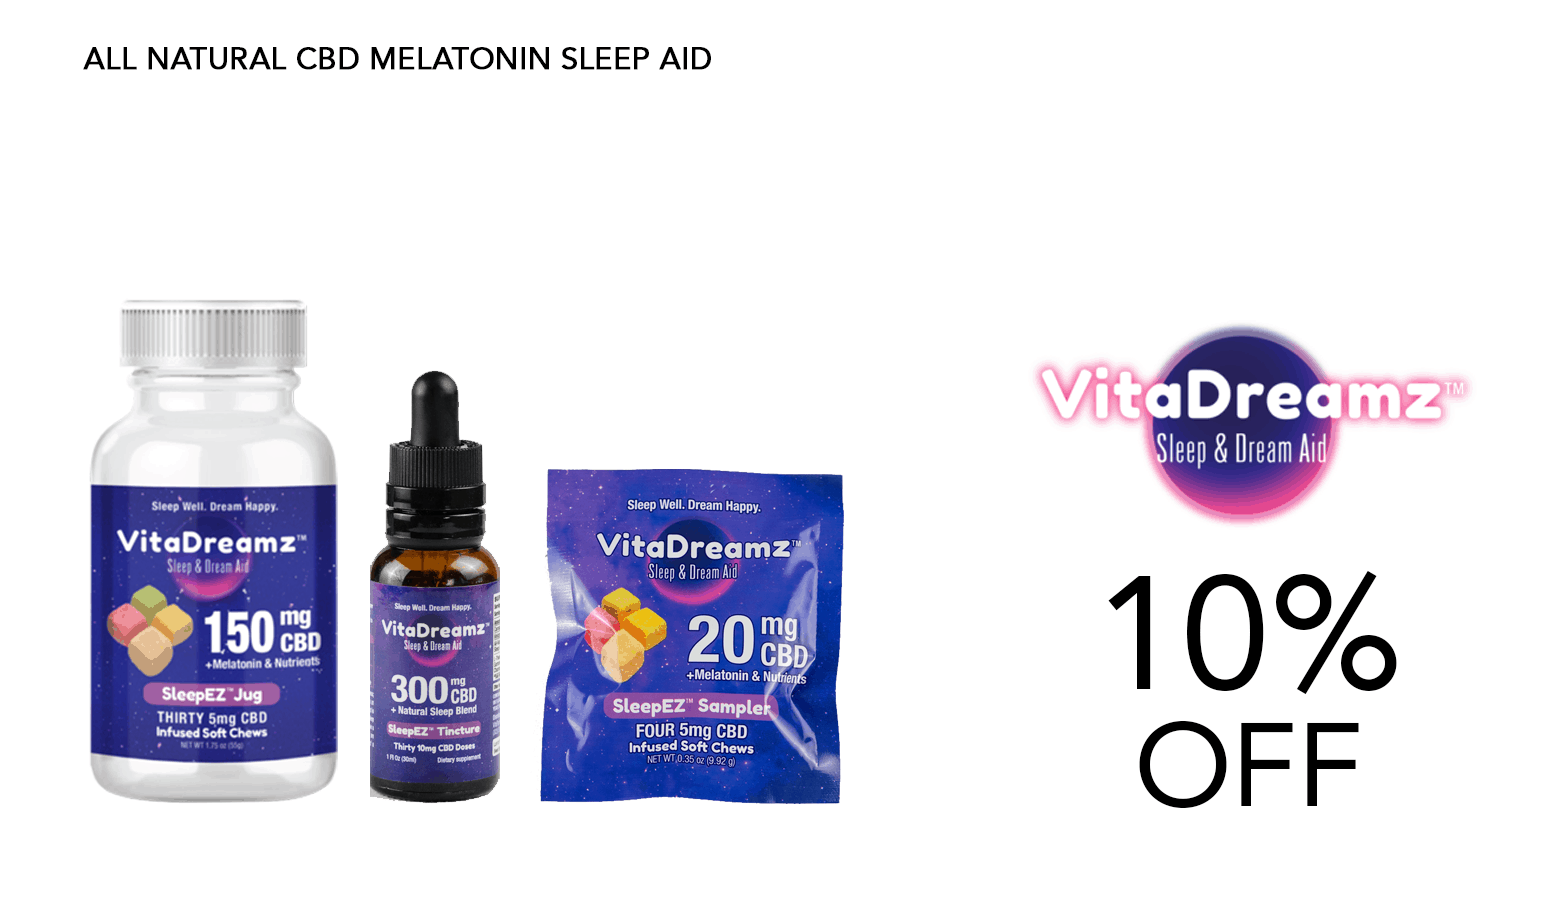 VitaDreamz CBD Coupon Code Discount Website